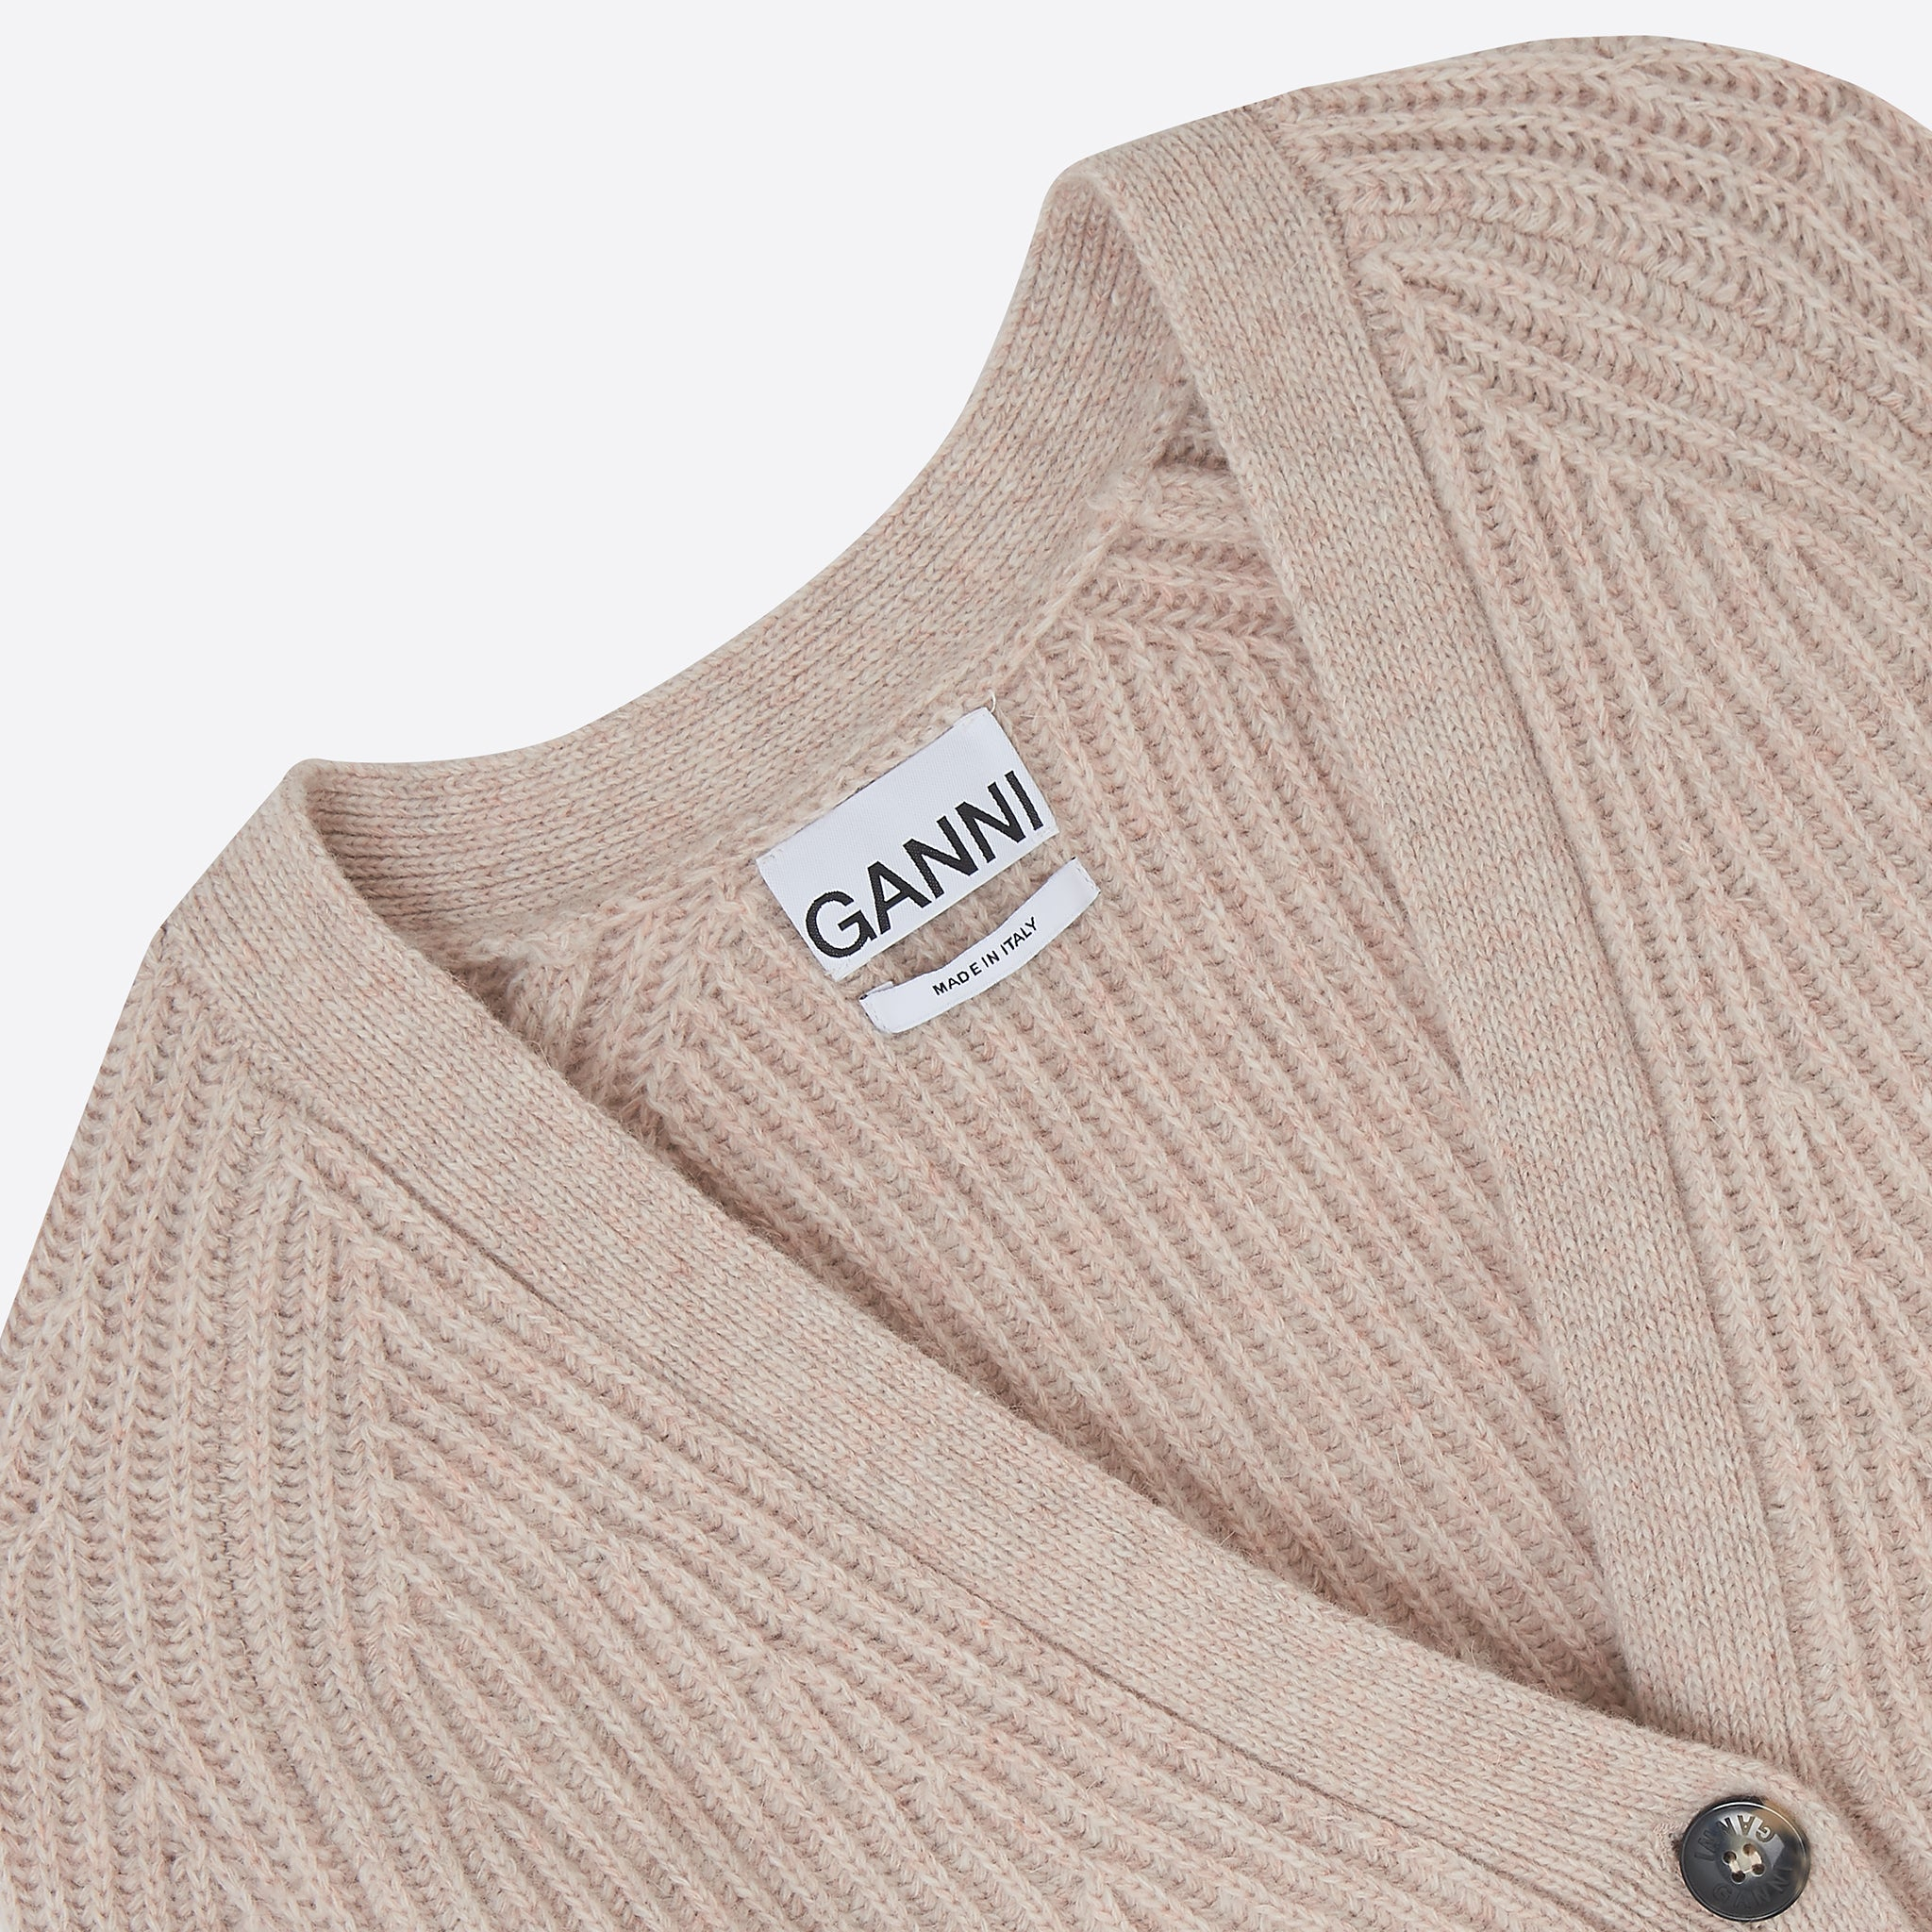 Ganni Rib Knit Cardigan in Brazilian Sand